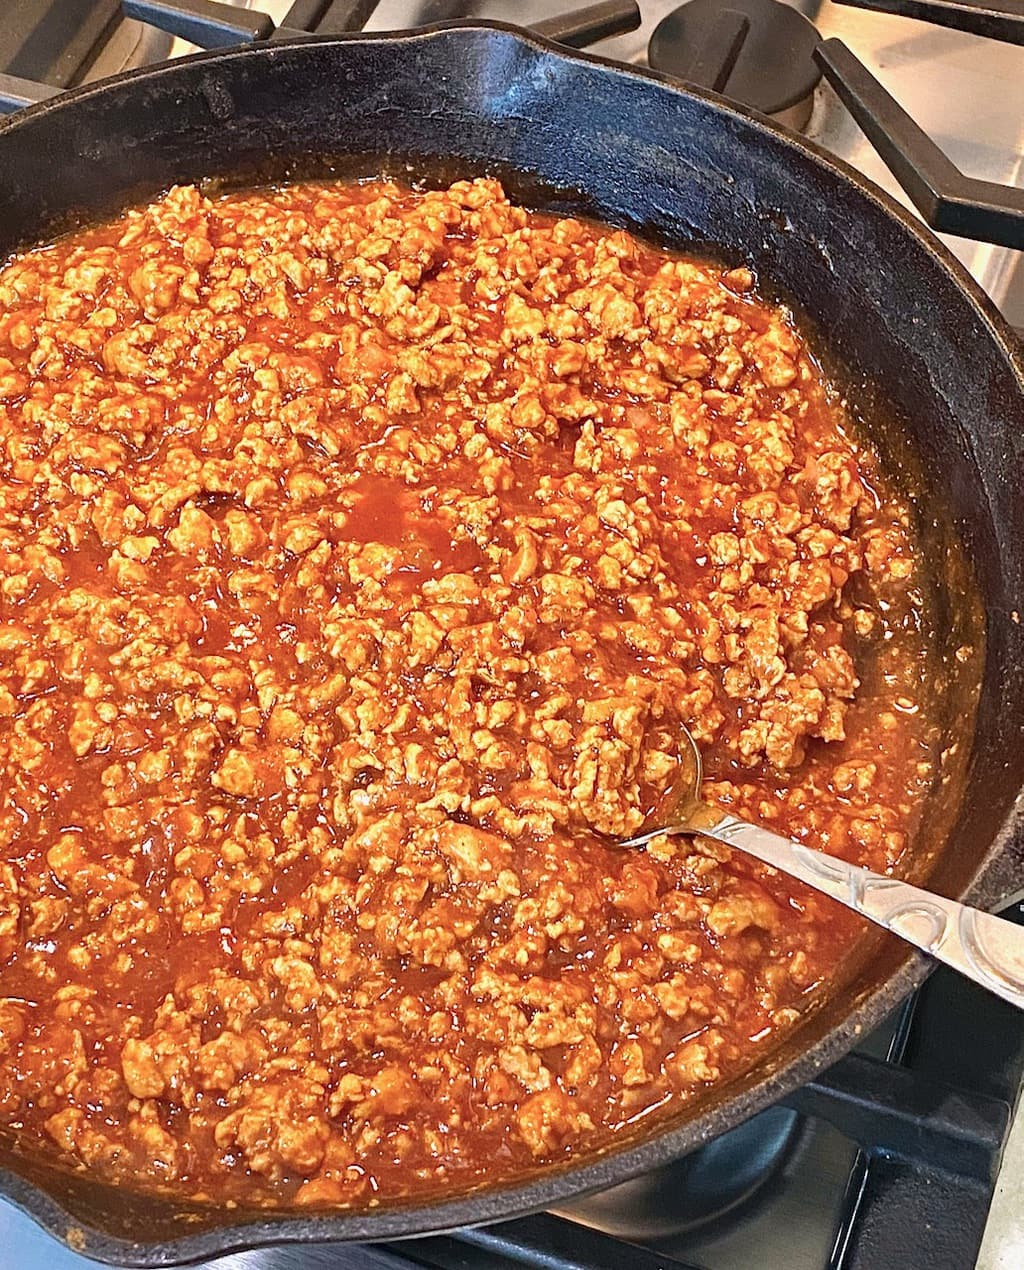 hot dog chili in a cast iron skillet